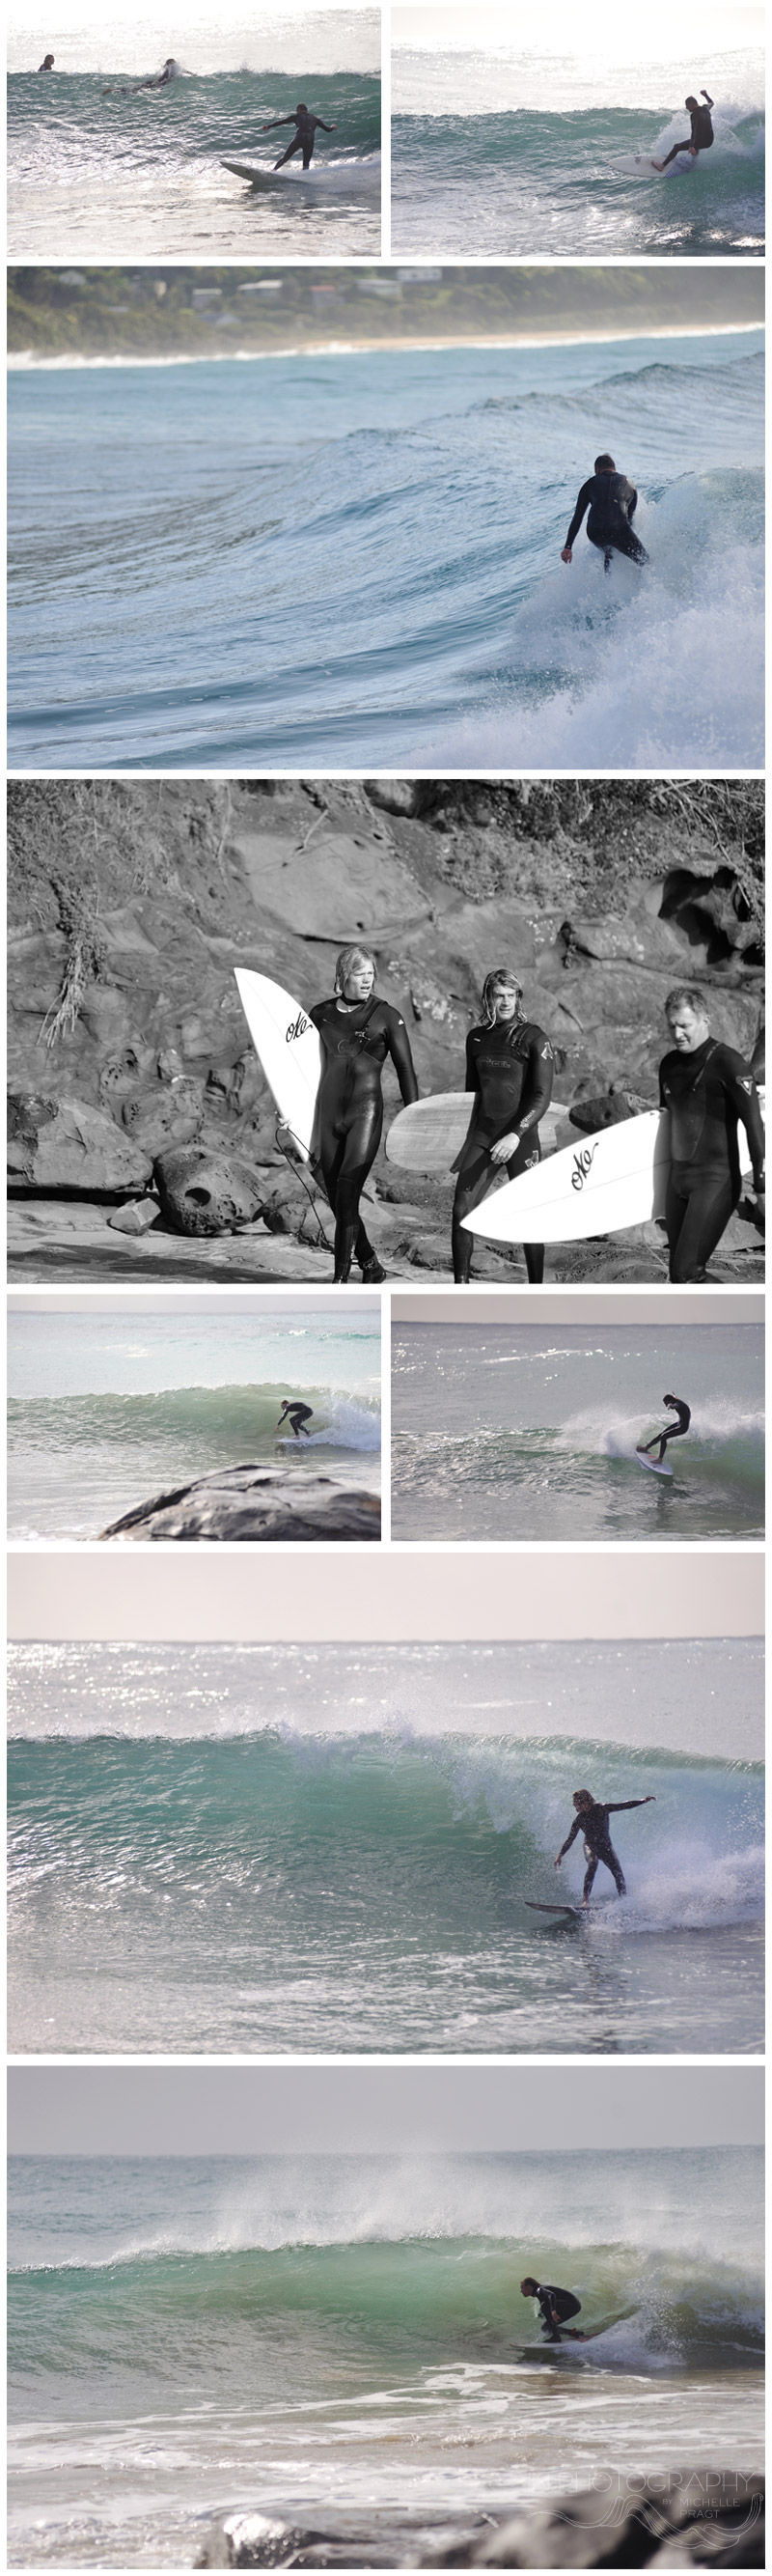 Surfers at Wye River